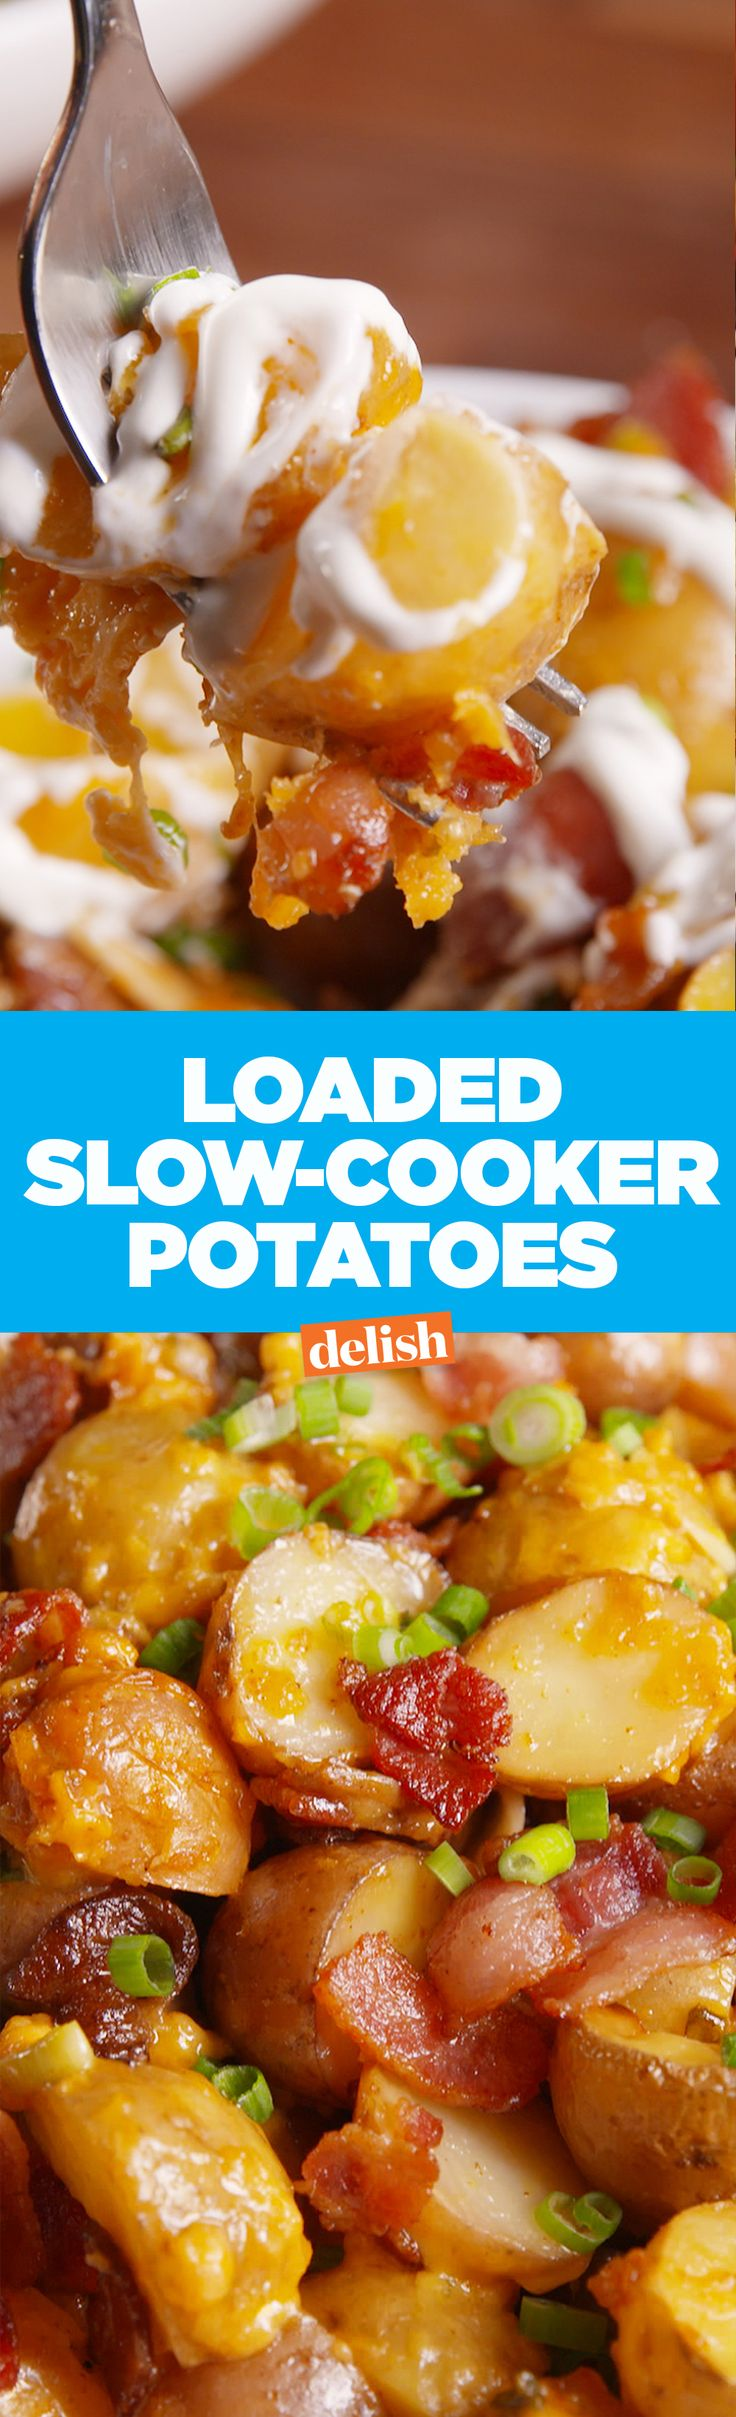 Loaded Slowcooker Potatoes